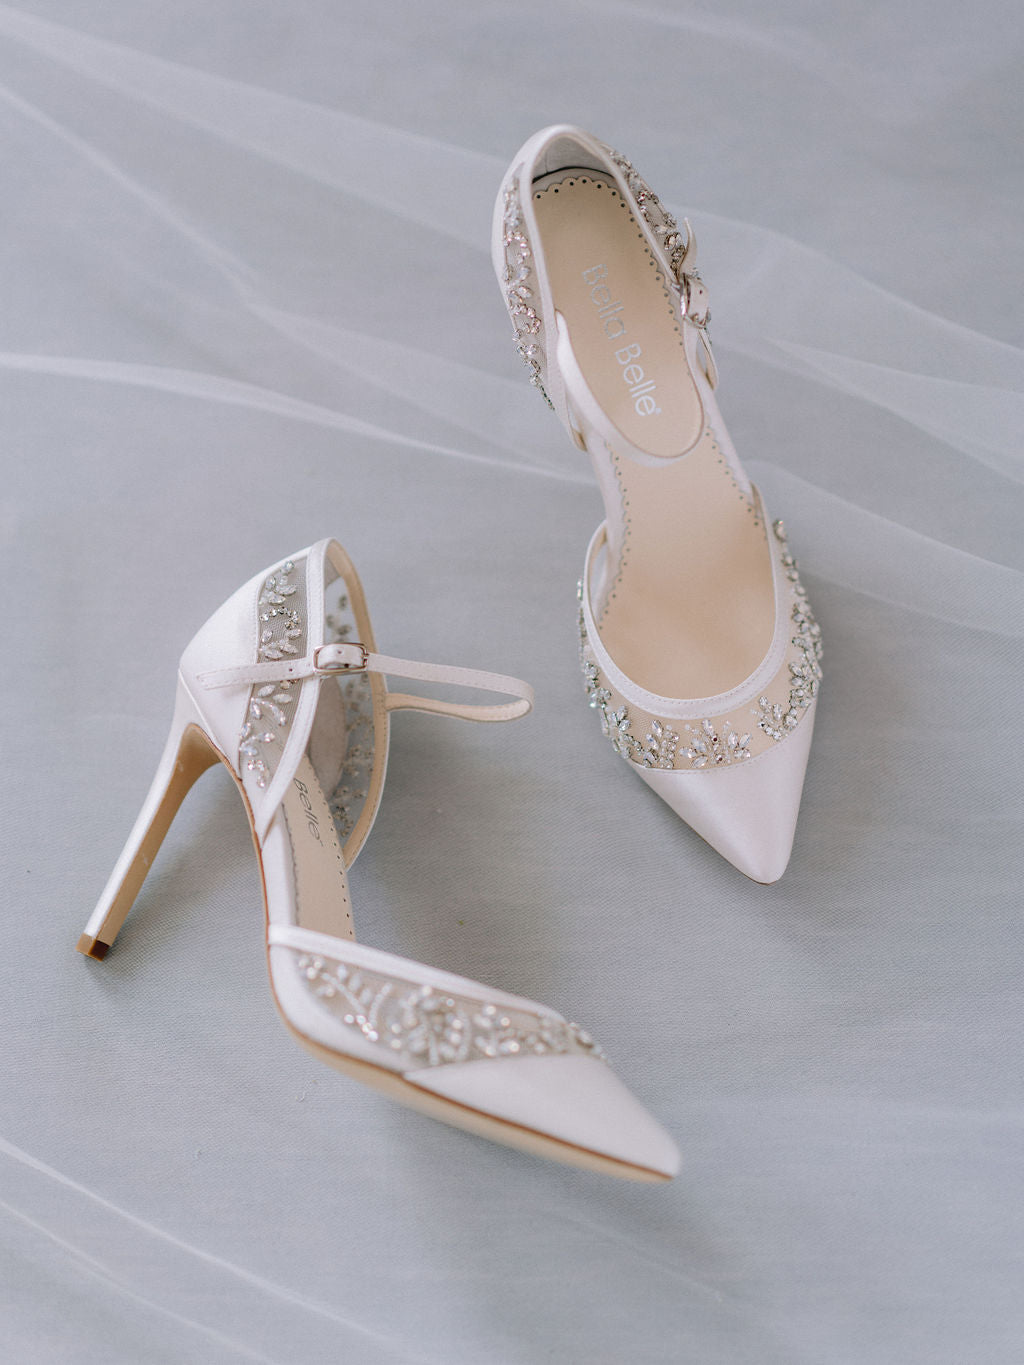 bella belle bridal trends crystal embellished wedding shoes 2020